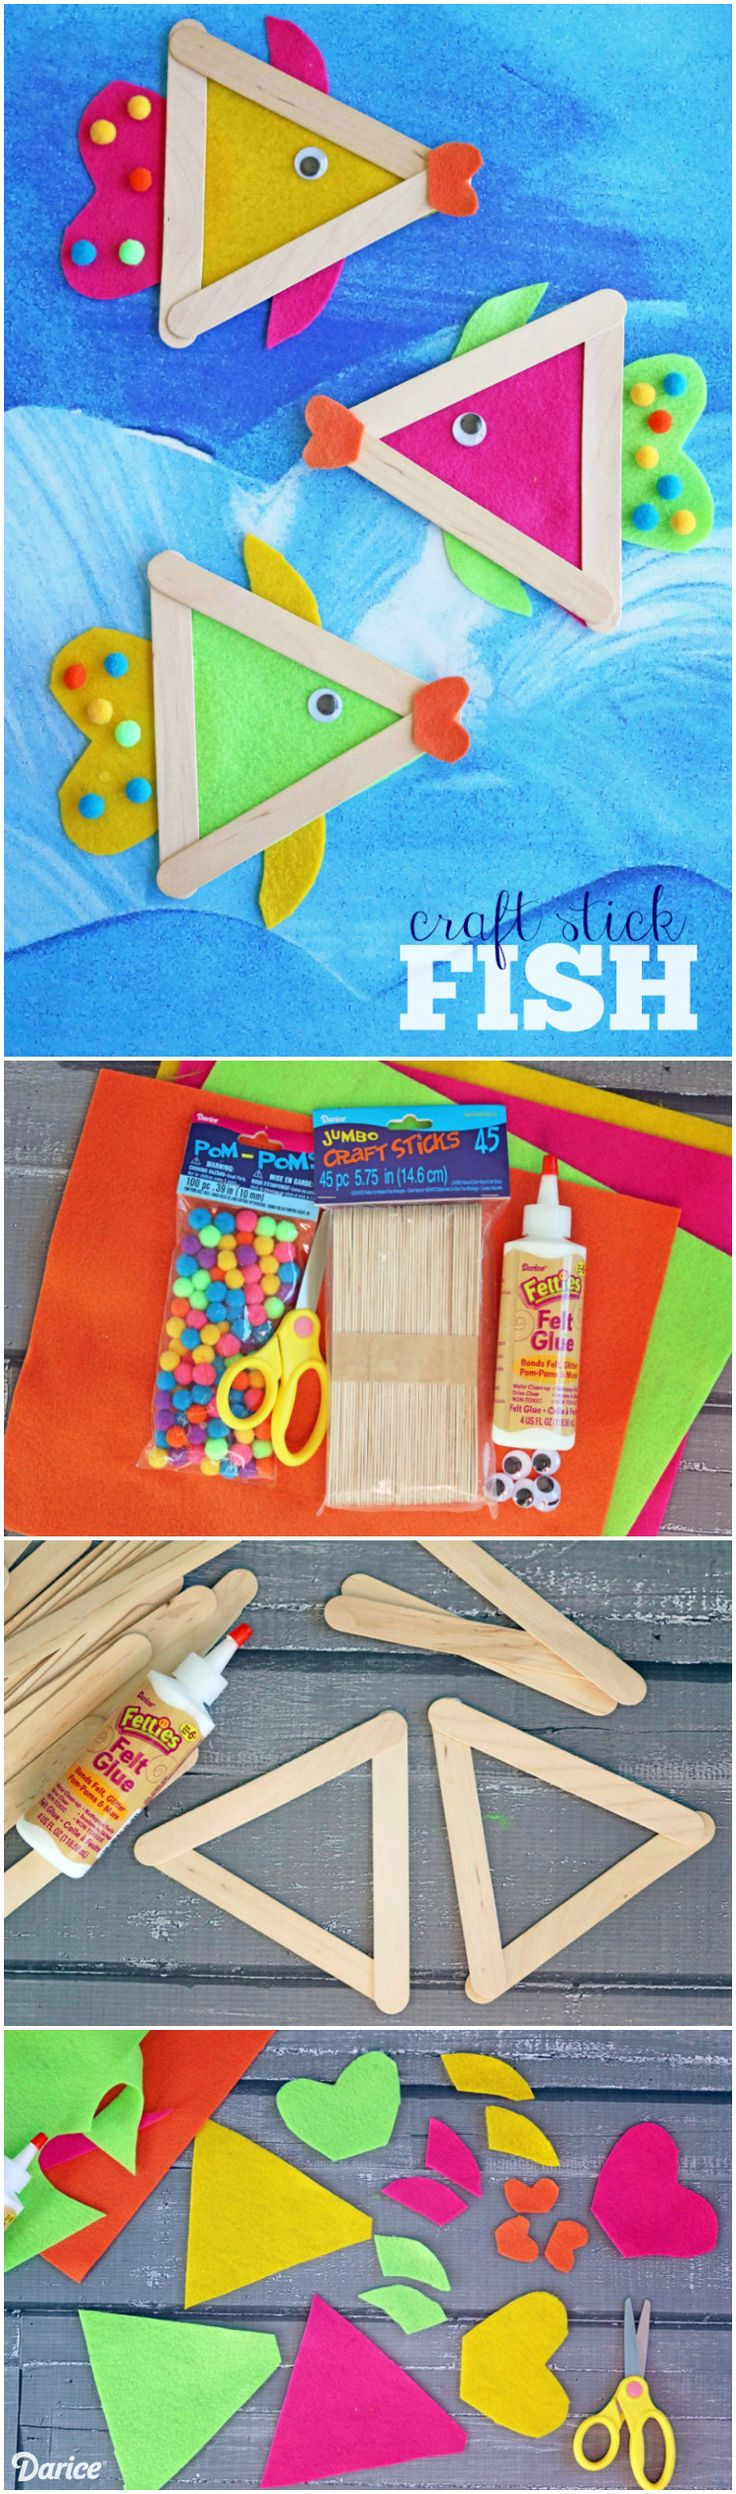 DIY Fish Craft mit Filz und Craft Sticks – Darice